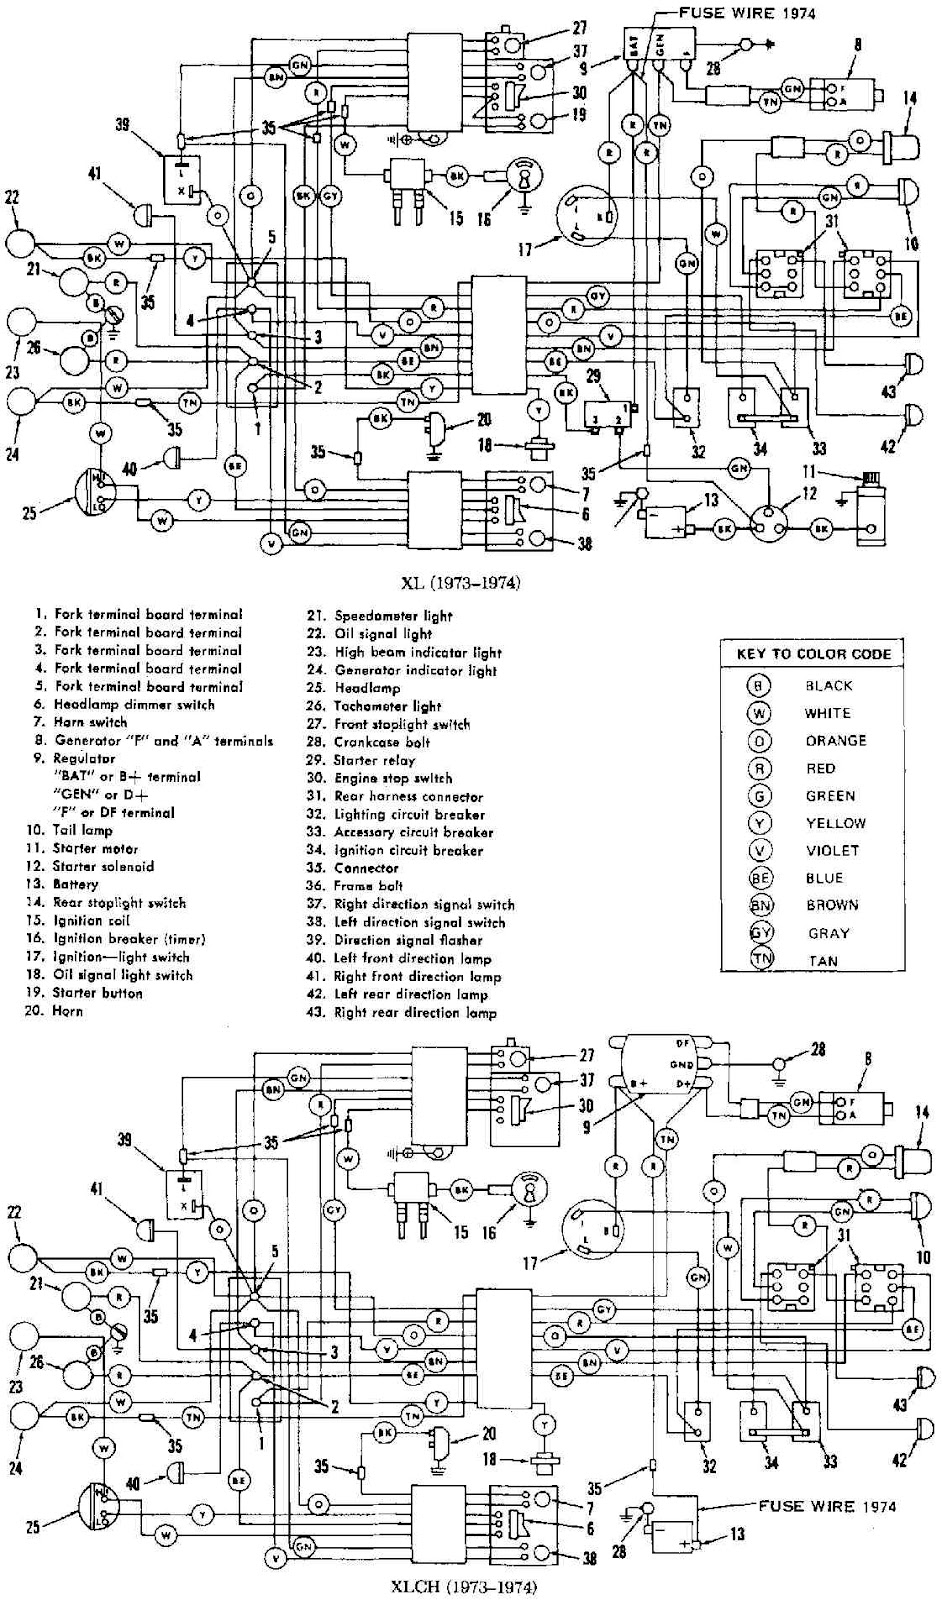 harley electrical diagram